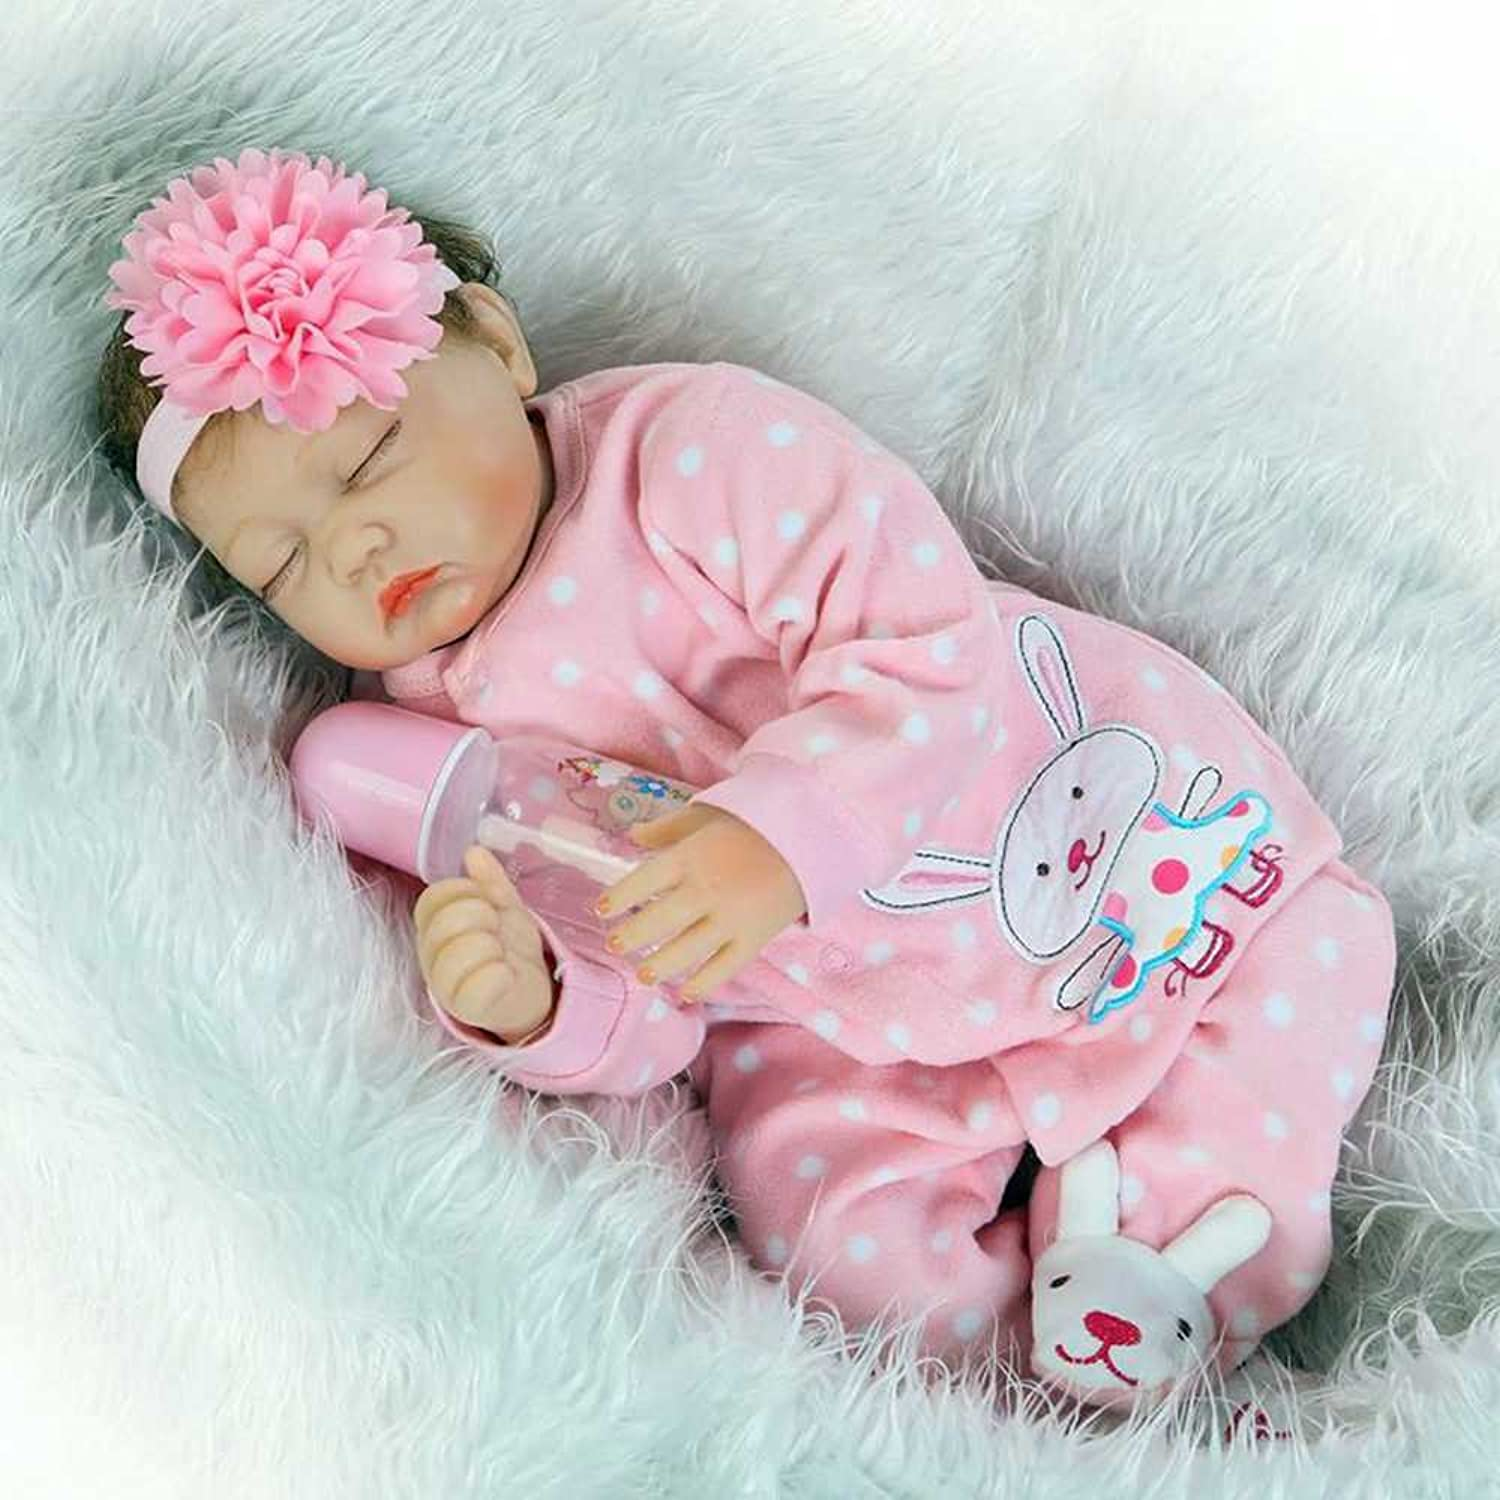 Yesteria Real Looking Sleeping Reborn Baby Doll Girl Silicone Pink 22 Inches